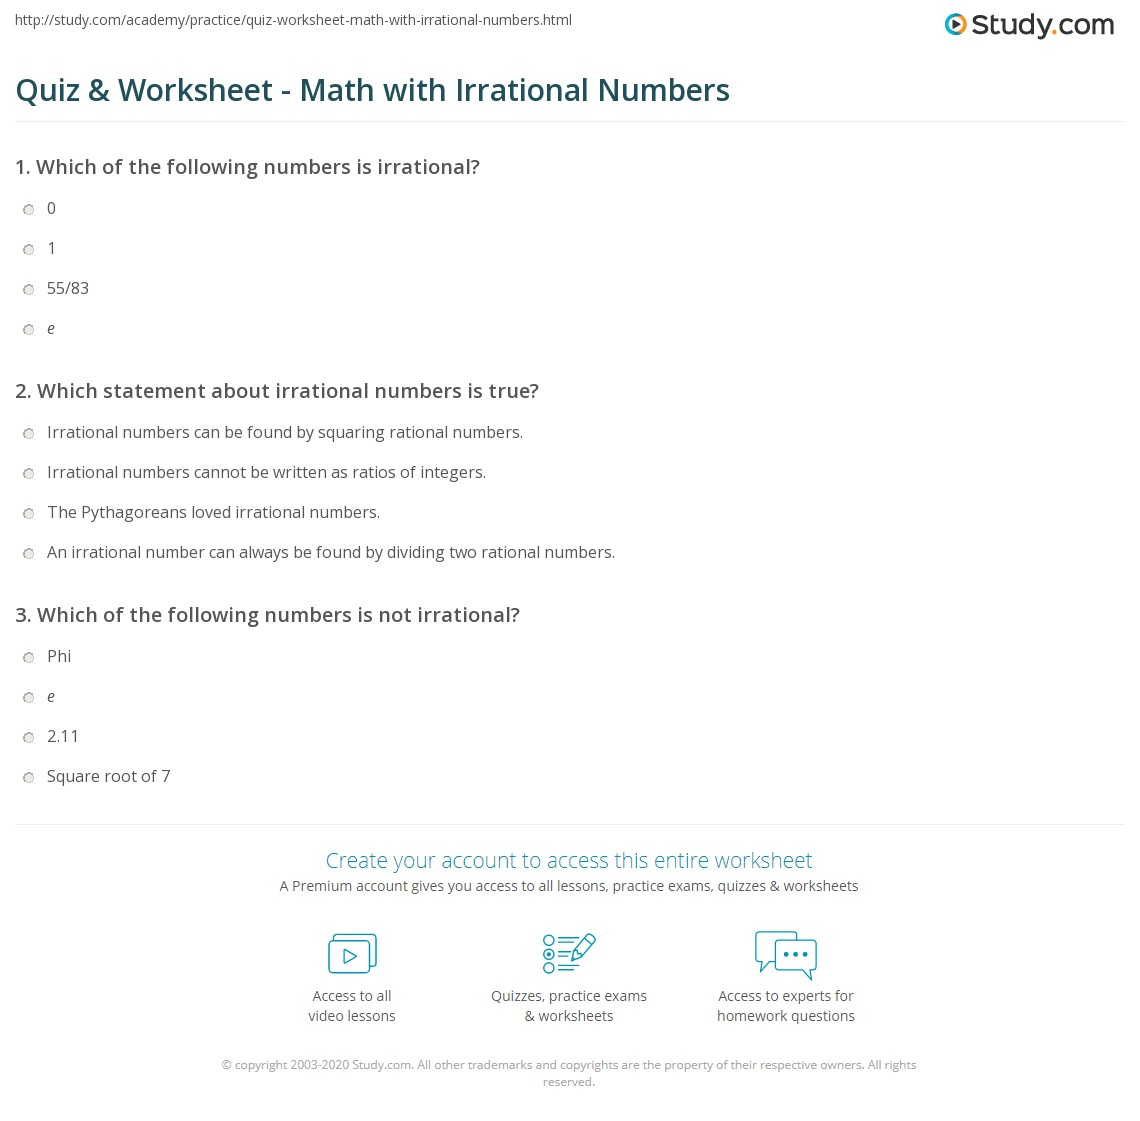 Rational Vs Irrational Thoughts Worksheet